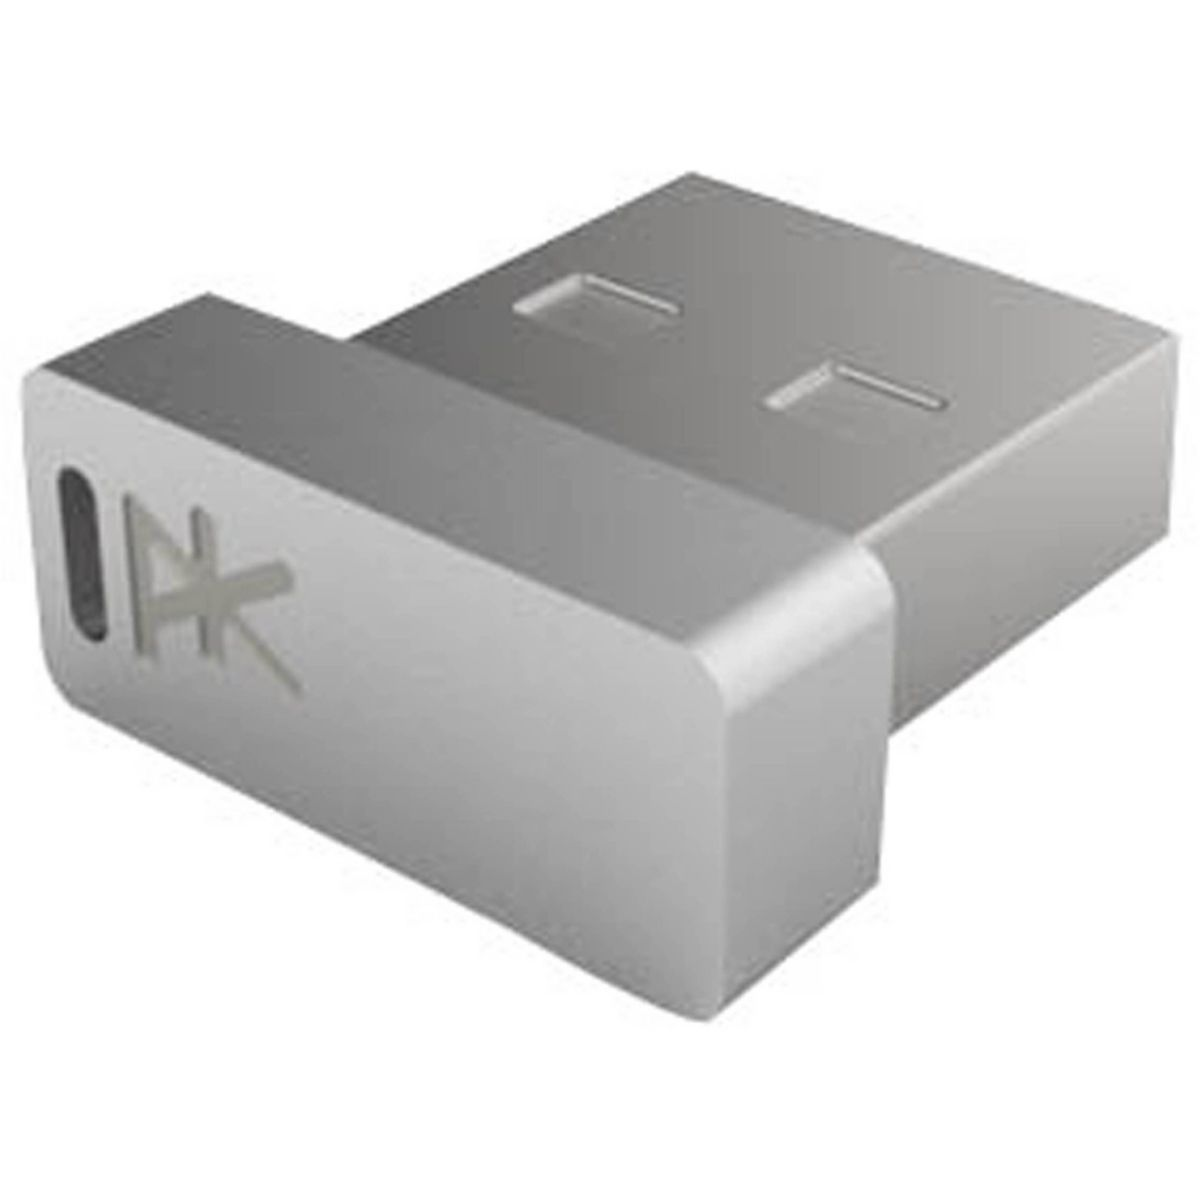 Clé USB PK K'1 64Go USB 3.0 (photo)